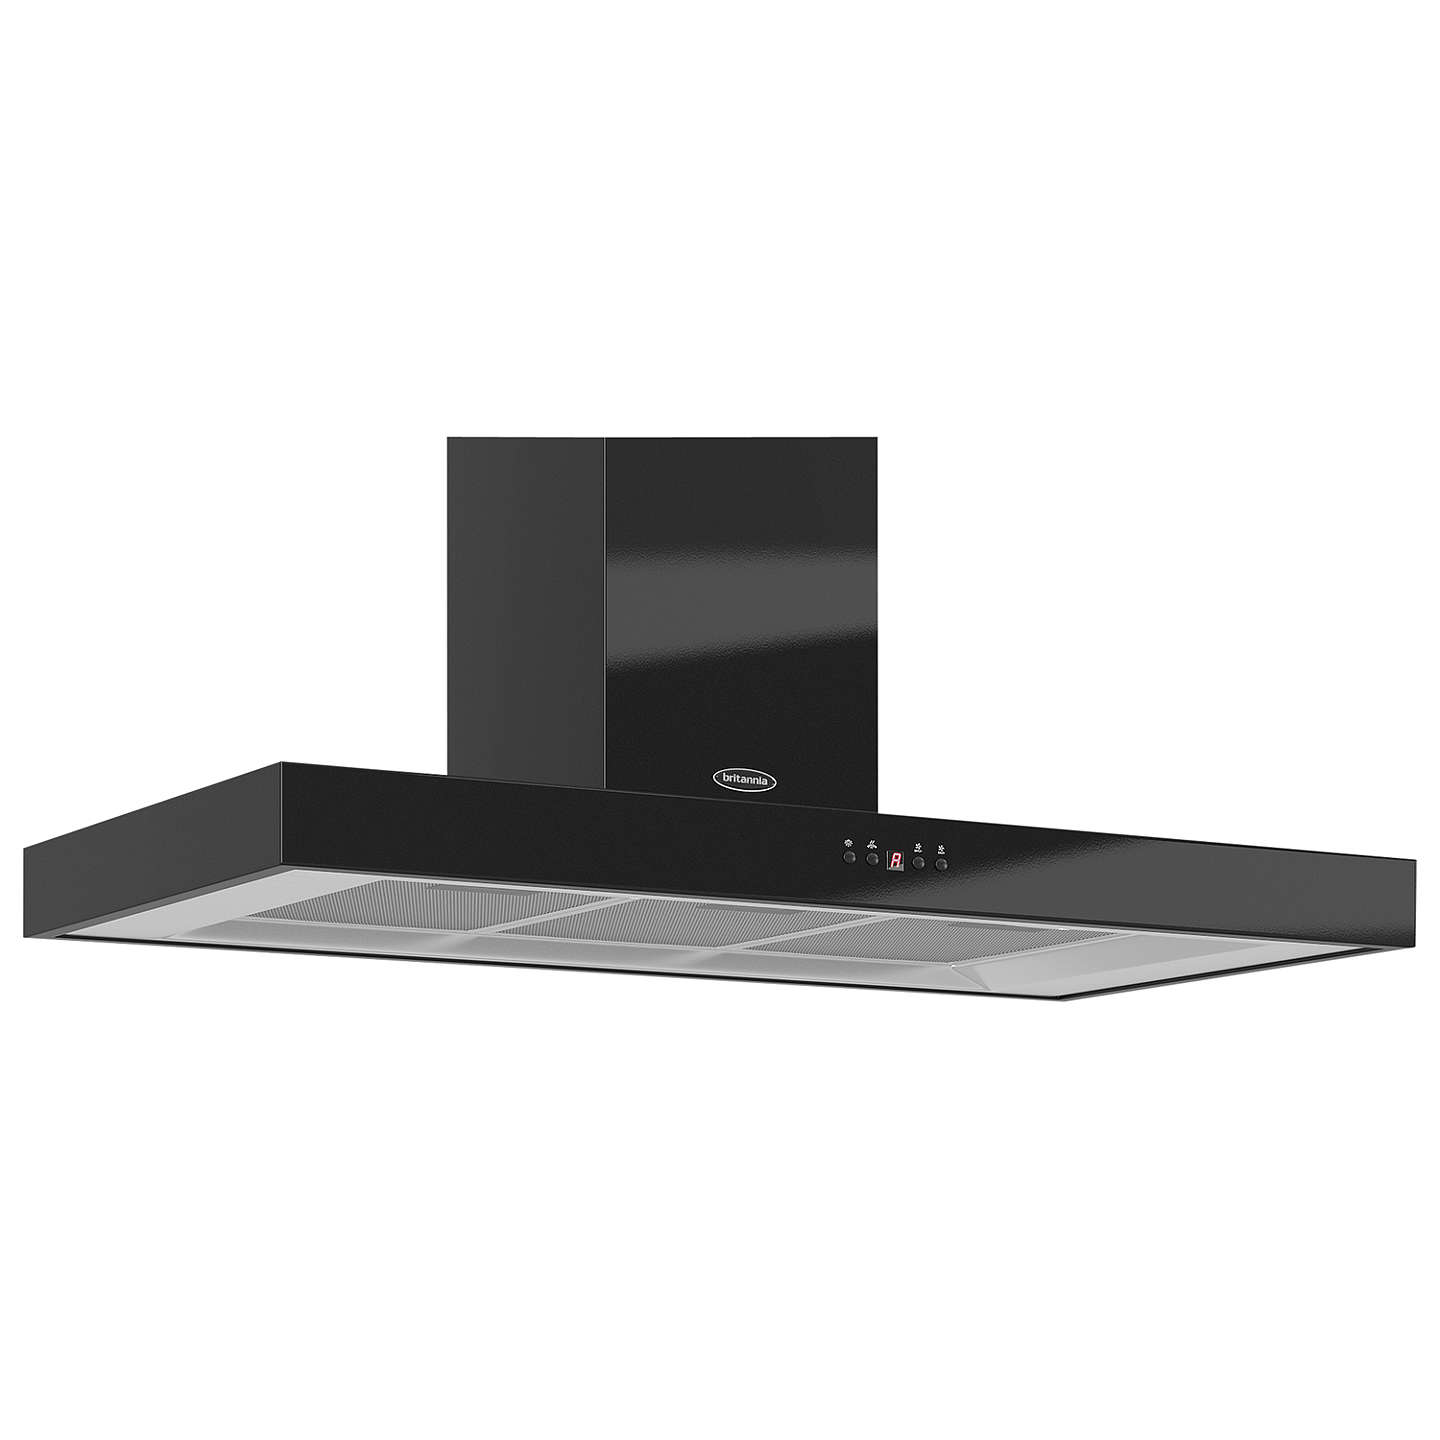 BuyBritannia K7088A-10-K Arioso Chimney Cooker Hood, Gloss Black Online at johnlewis.com